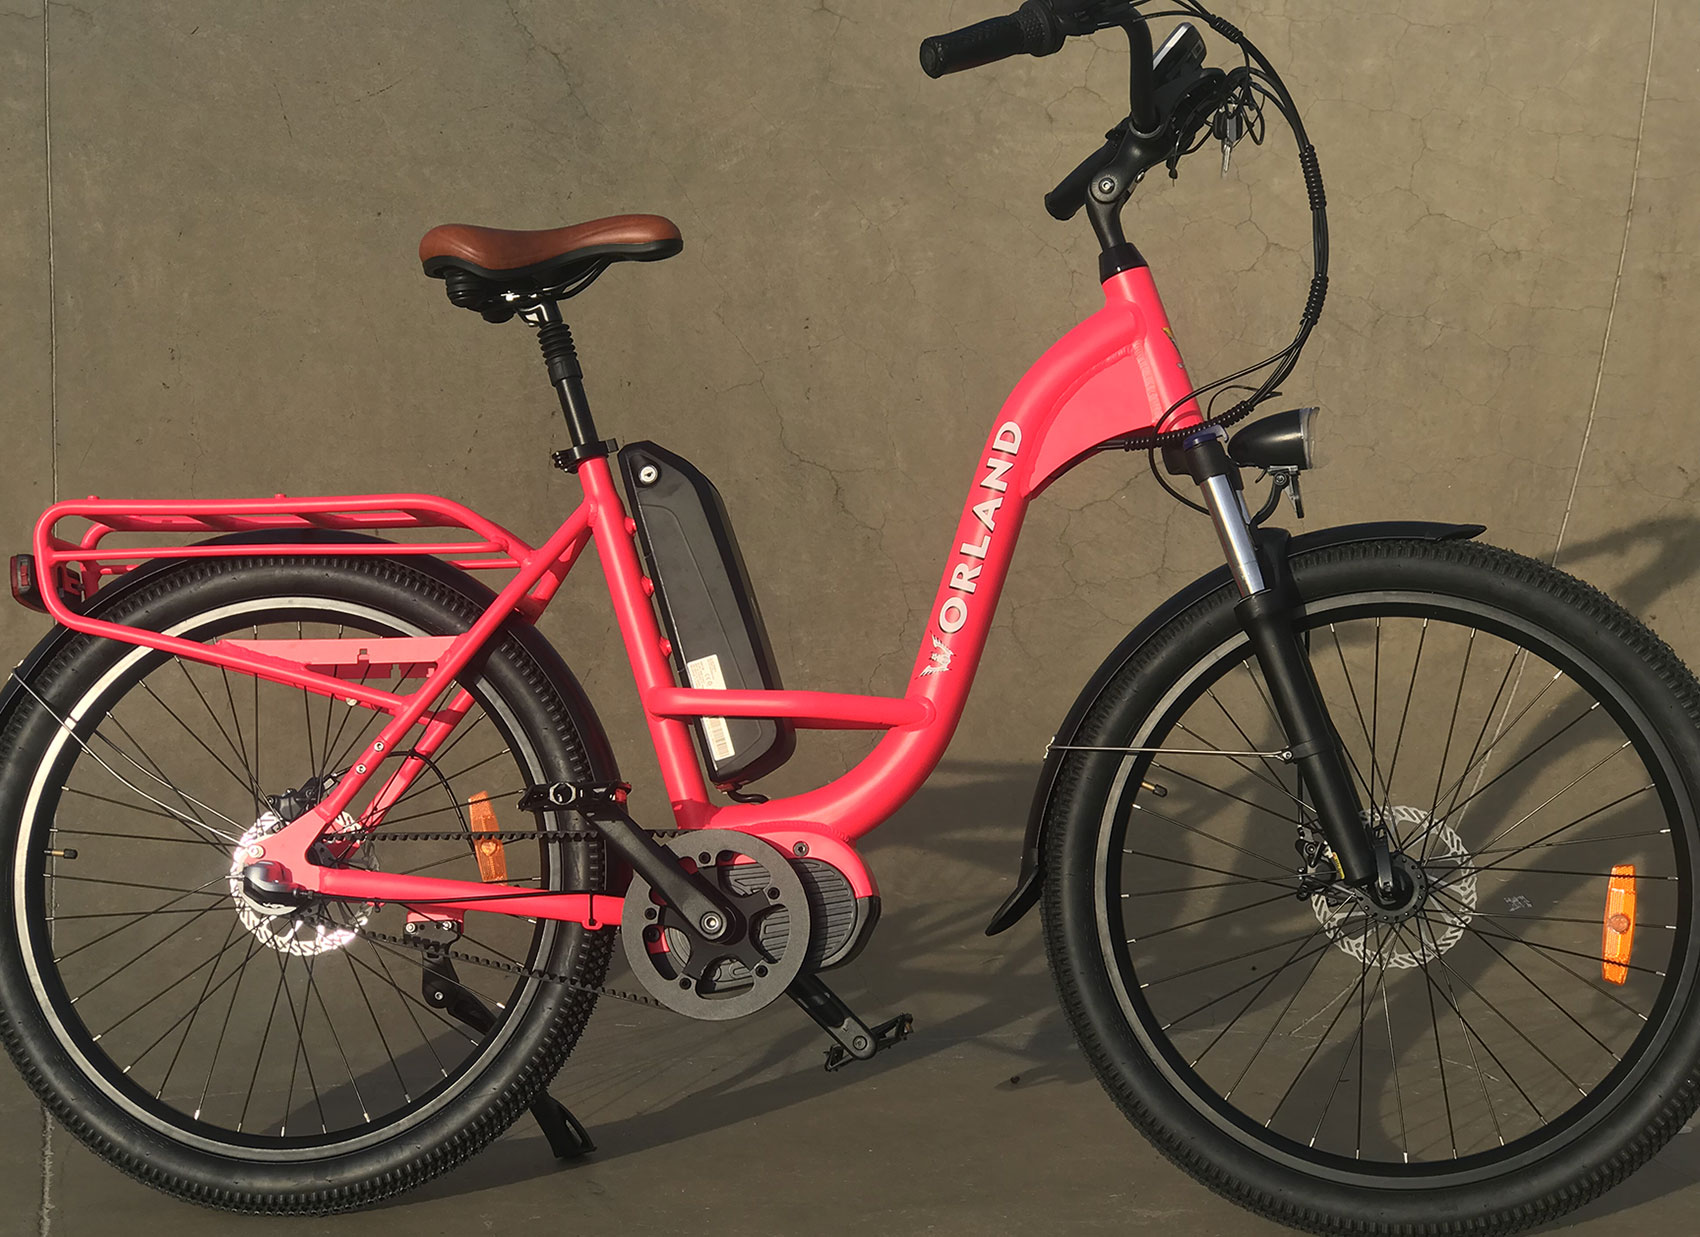 The Rosetown by Worland Electric Bicycles is a step through ebike